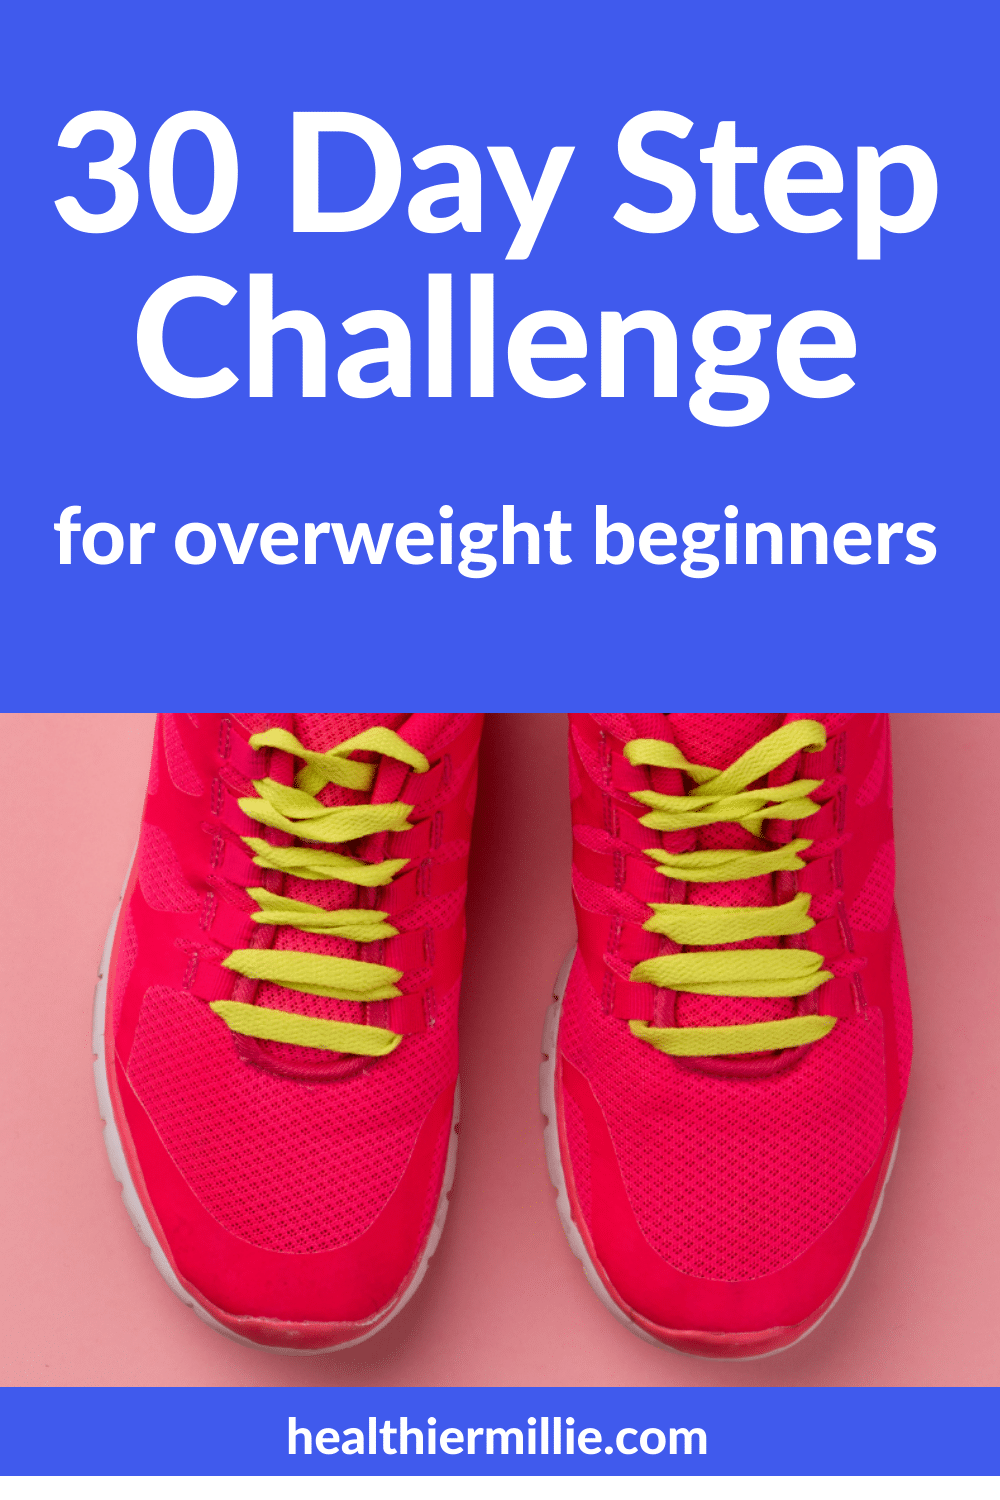 30 Day Step Challenge for Overweight Beginners